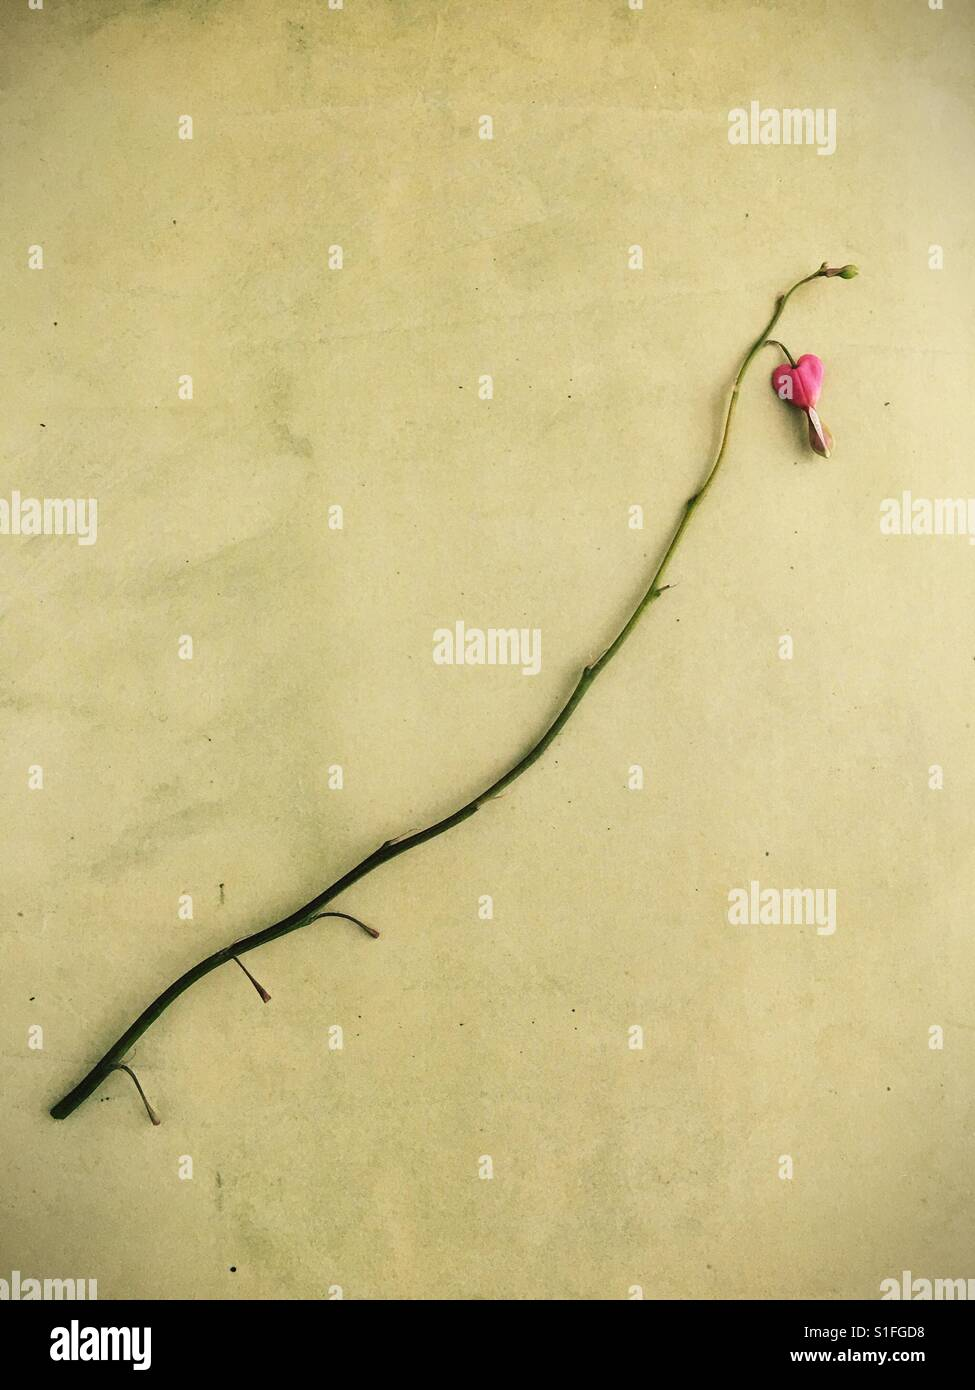 A single bleeding heart flower on a branch. - Stock Image